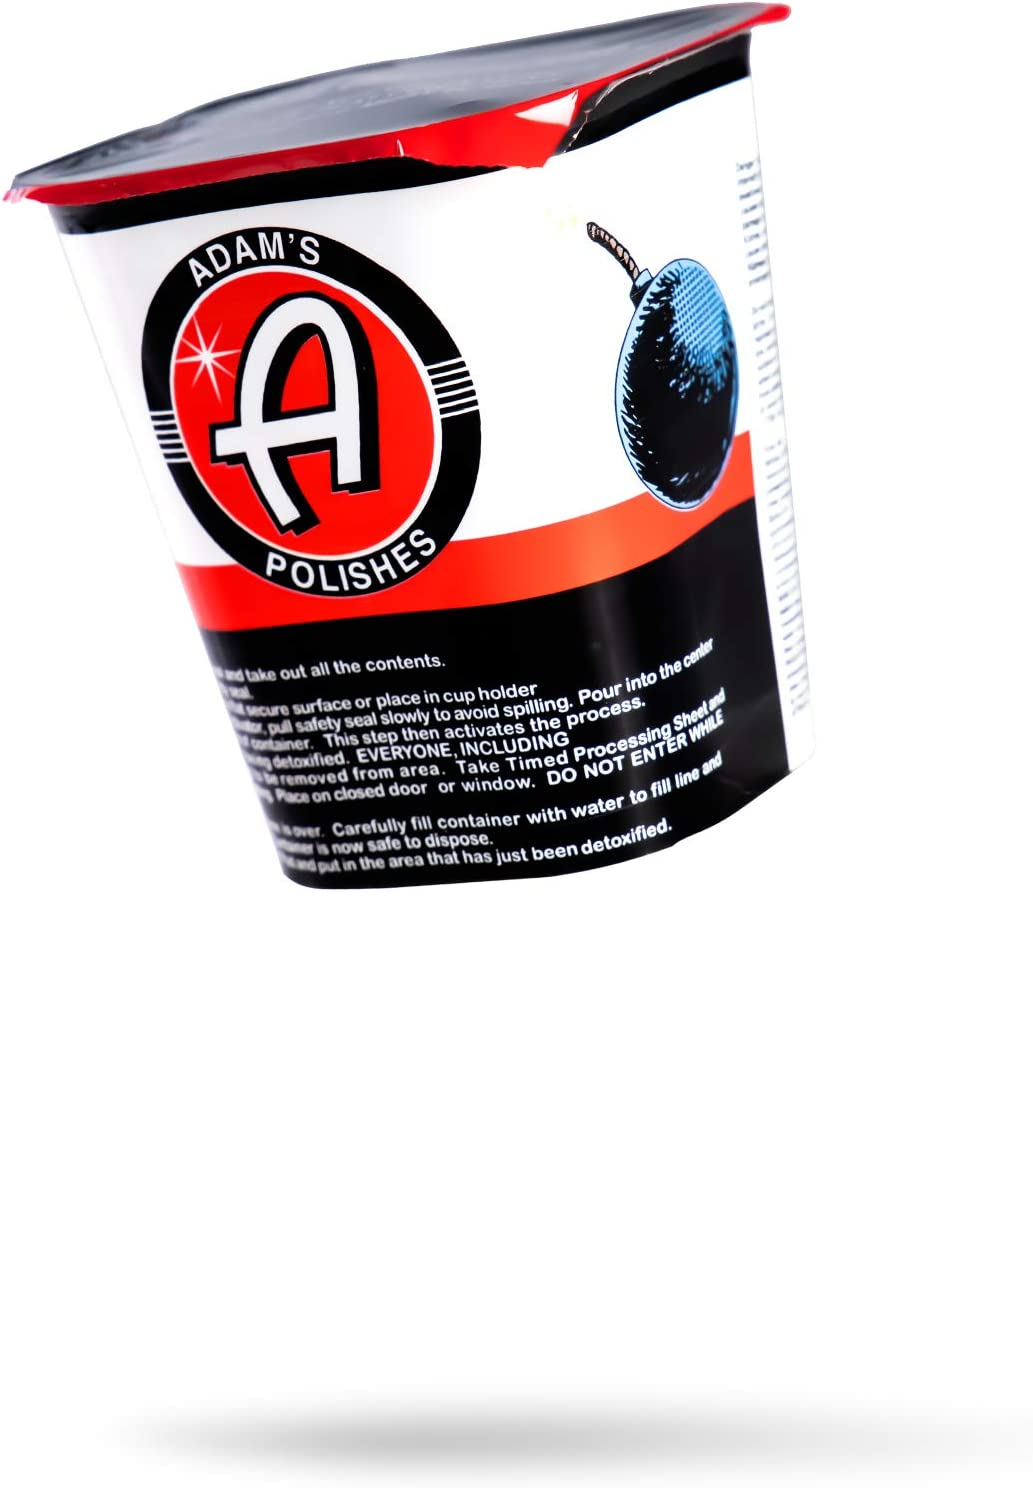 Adam's Odor Bomb - Eliminates Severe Odors - Eco-Friendly Vapors Work on All Chemical and Organic Odors